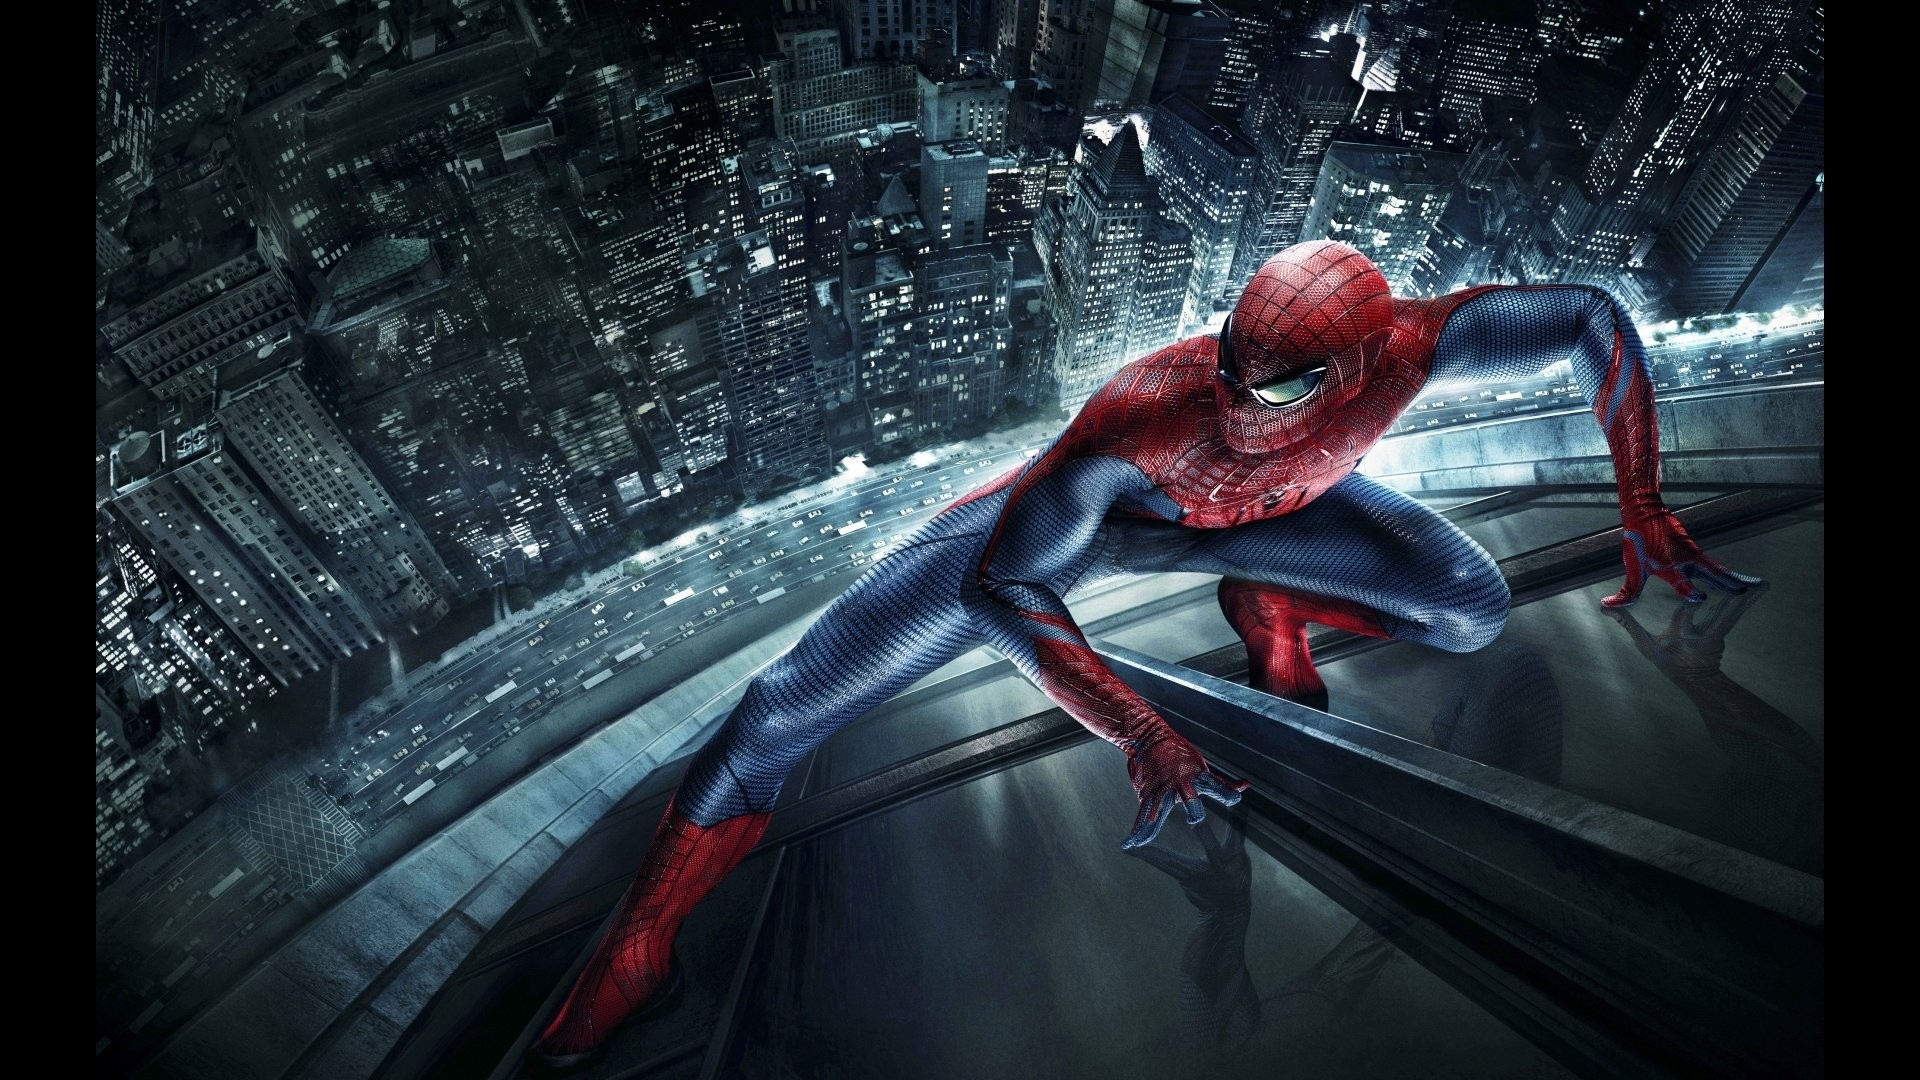 The Amazing Spider Man HD Wallpapers Group × The Amazing | HD Wallpapers |  Pinterest | Amazing spider and Wallpaper